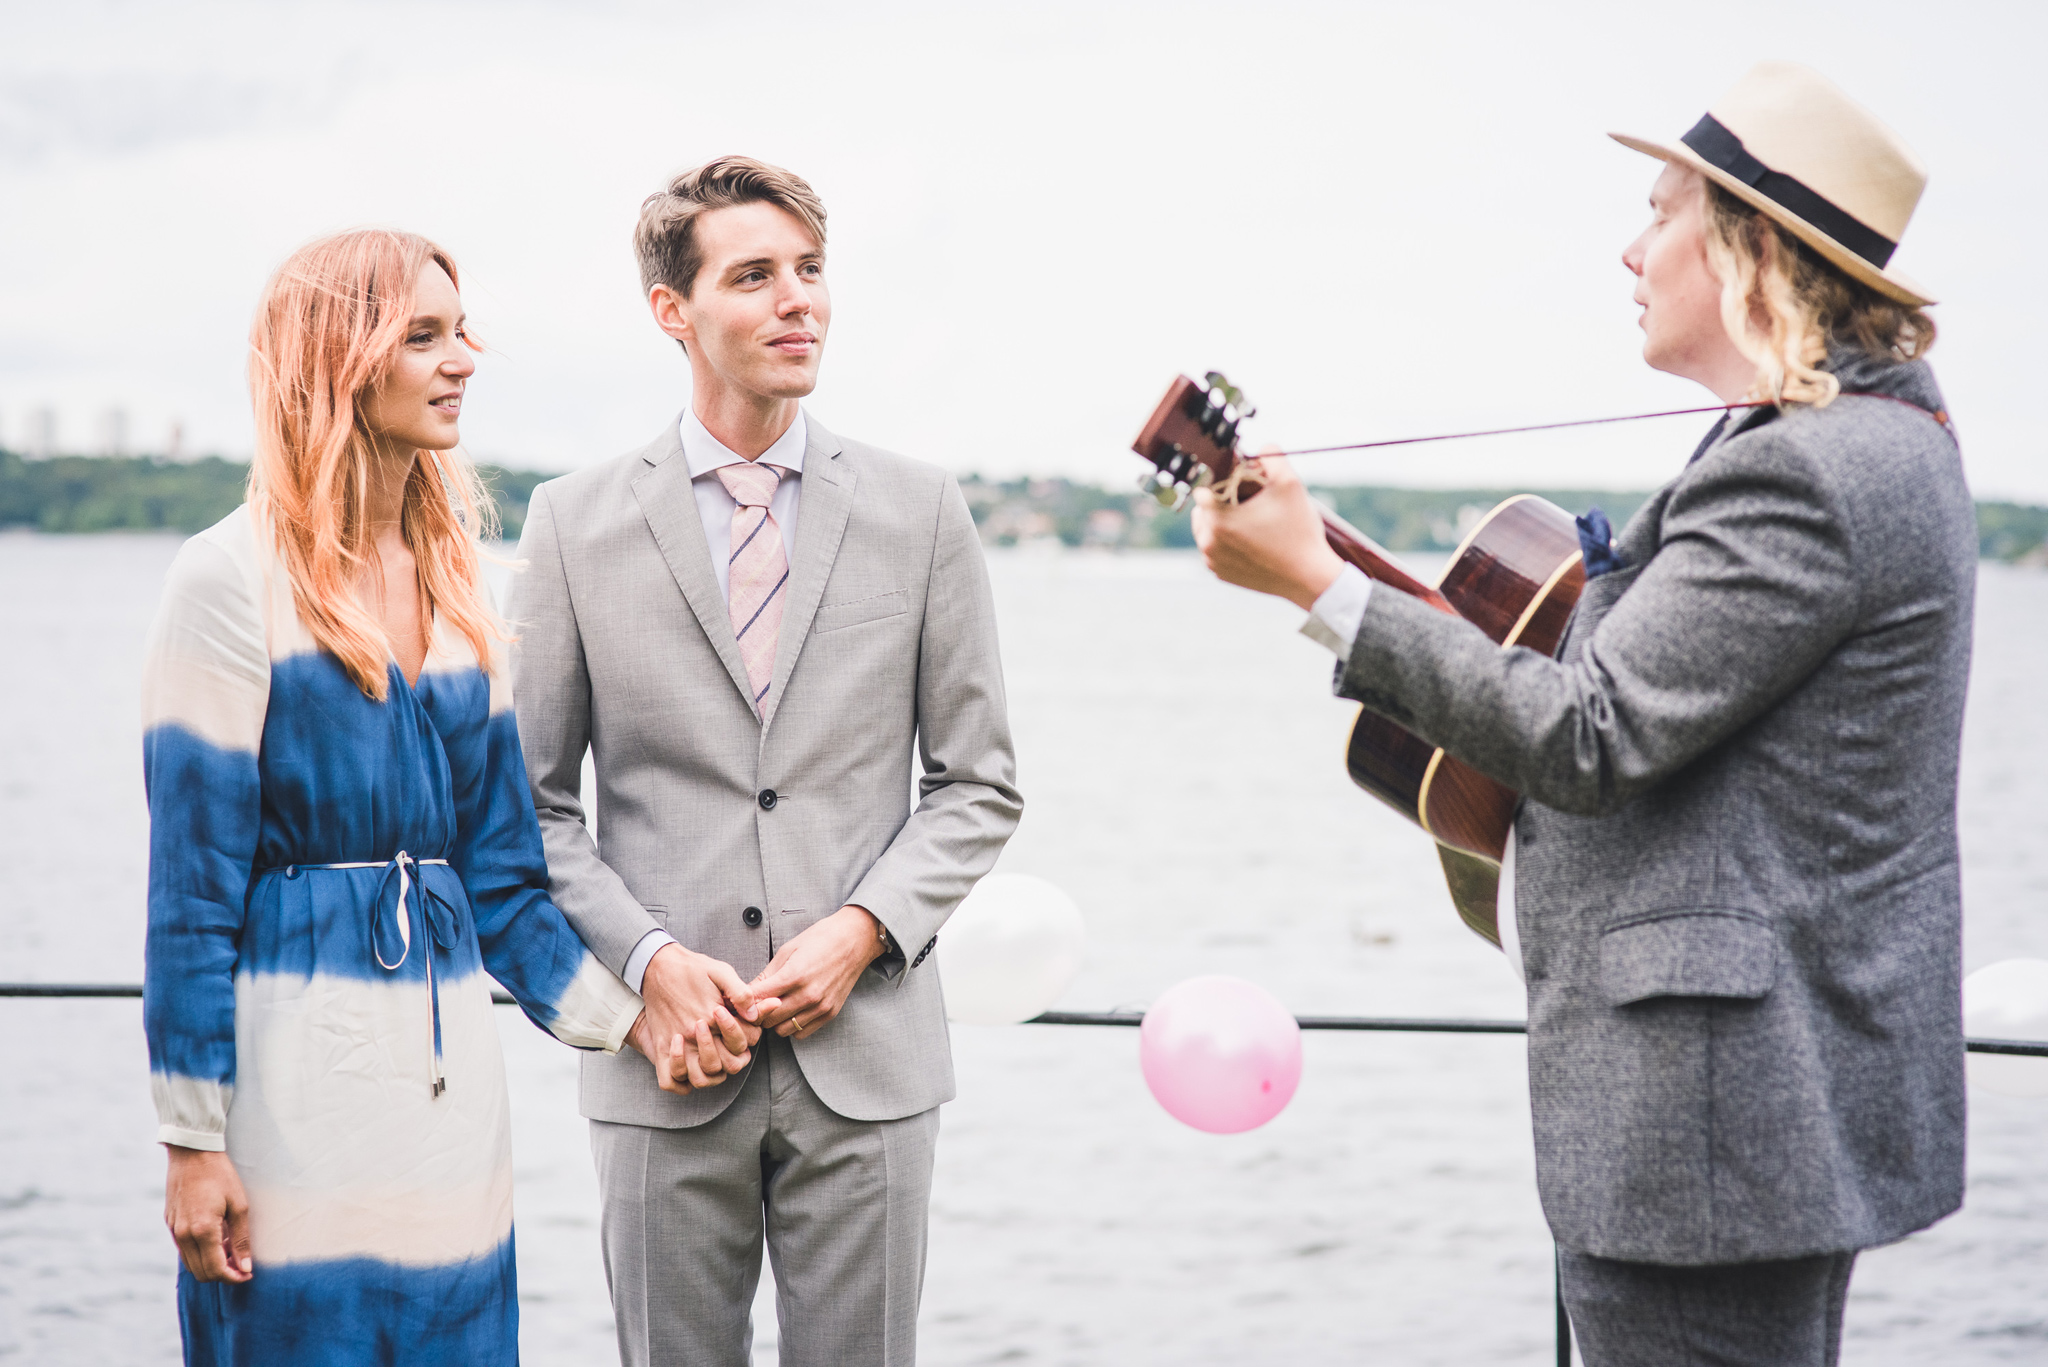 music at a small elopement wedding in stockholm